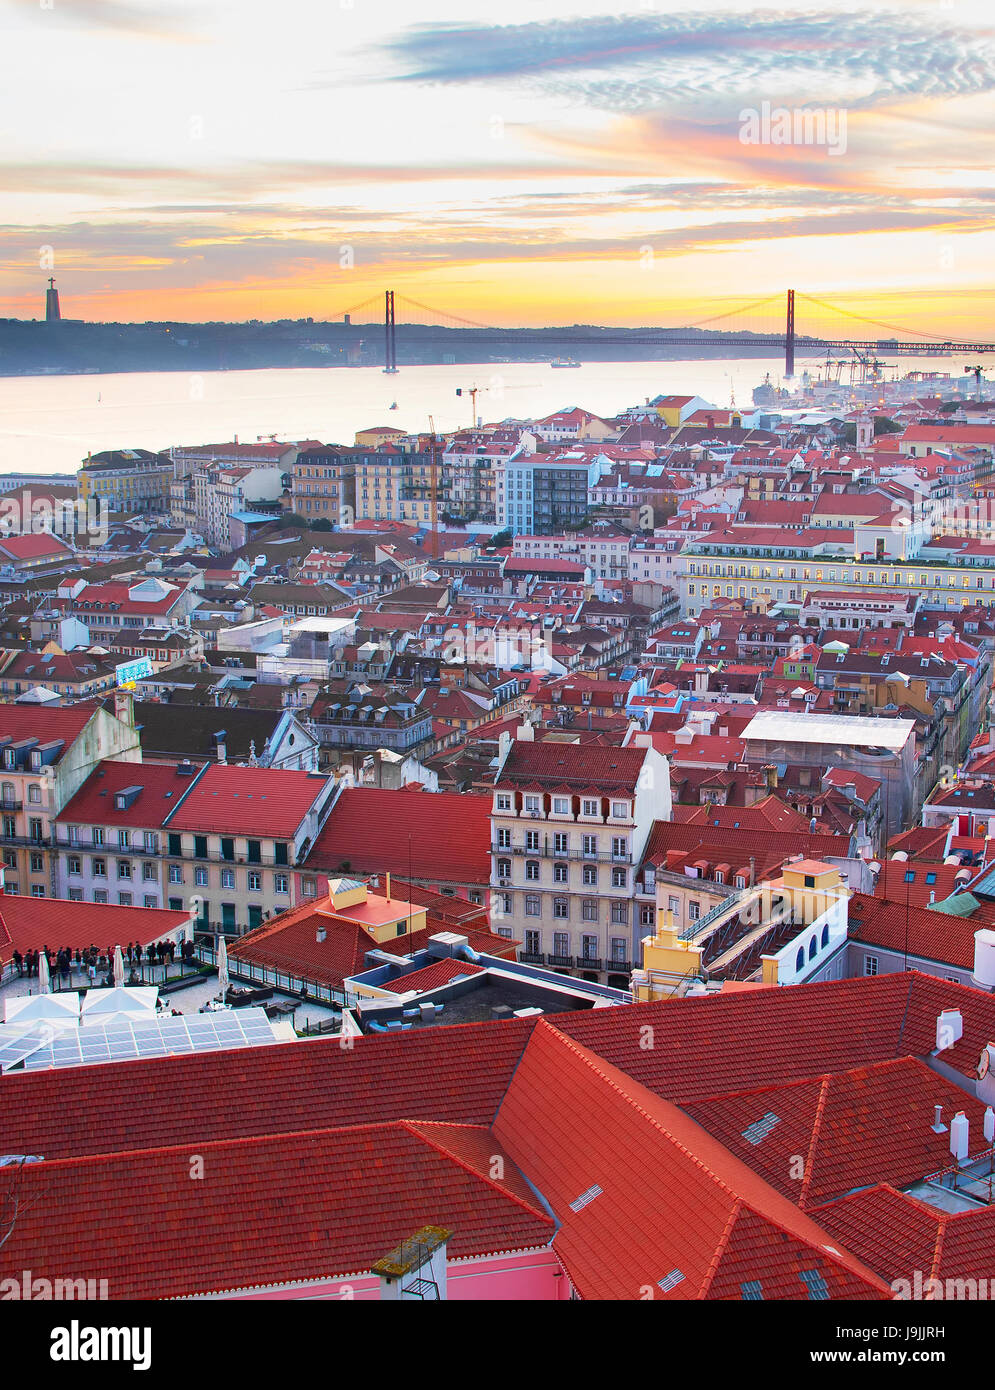 Lisbon Old Town view in the beautiful sunset. Portugal - Stock Image